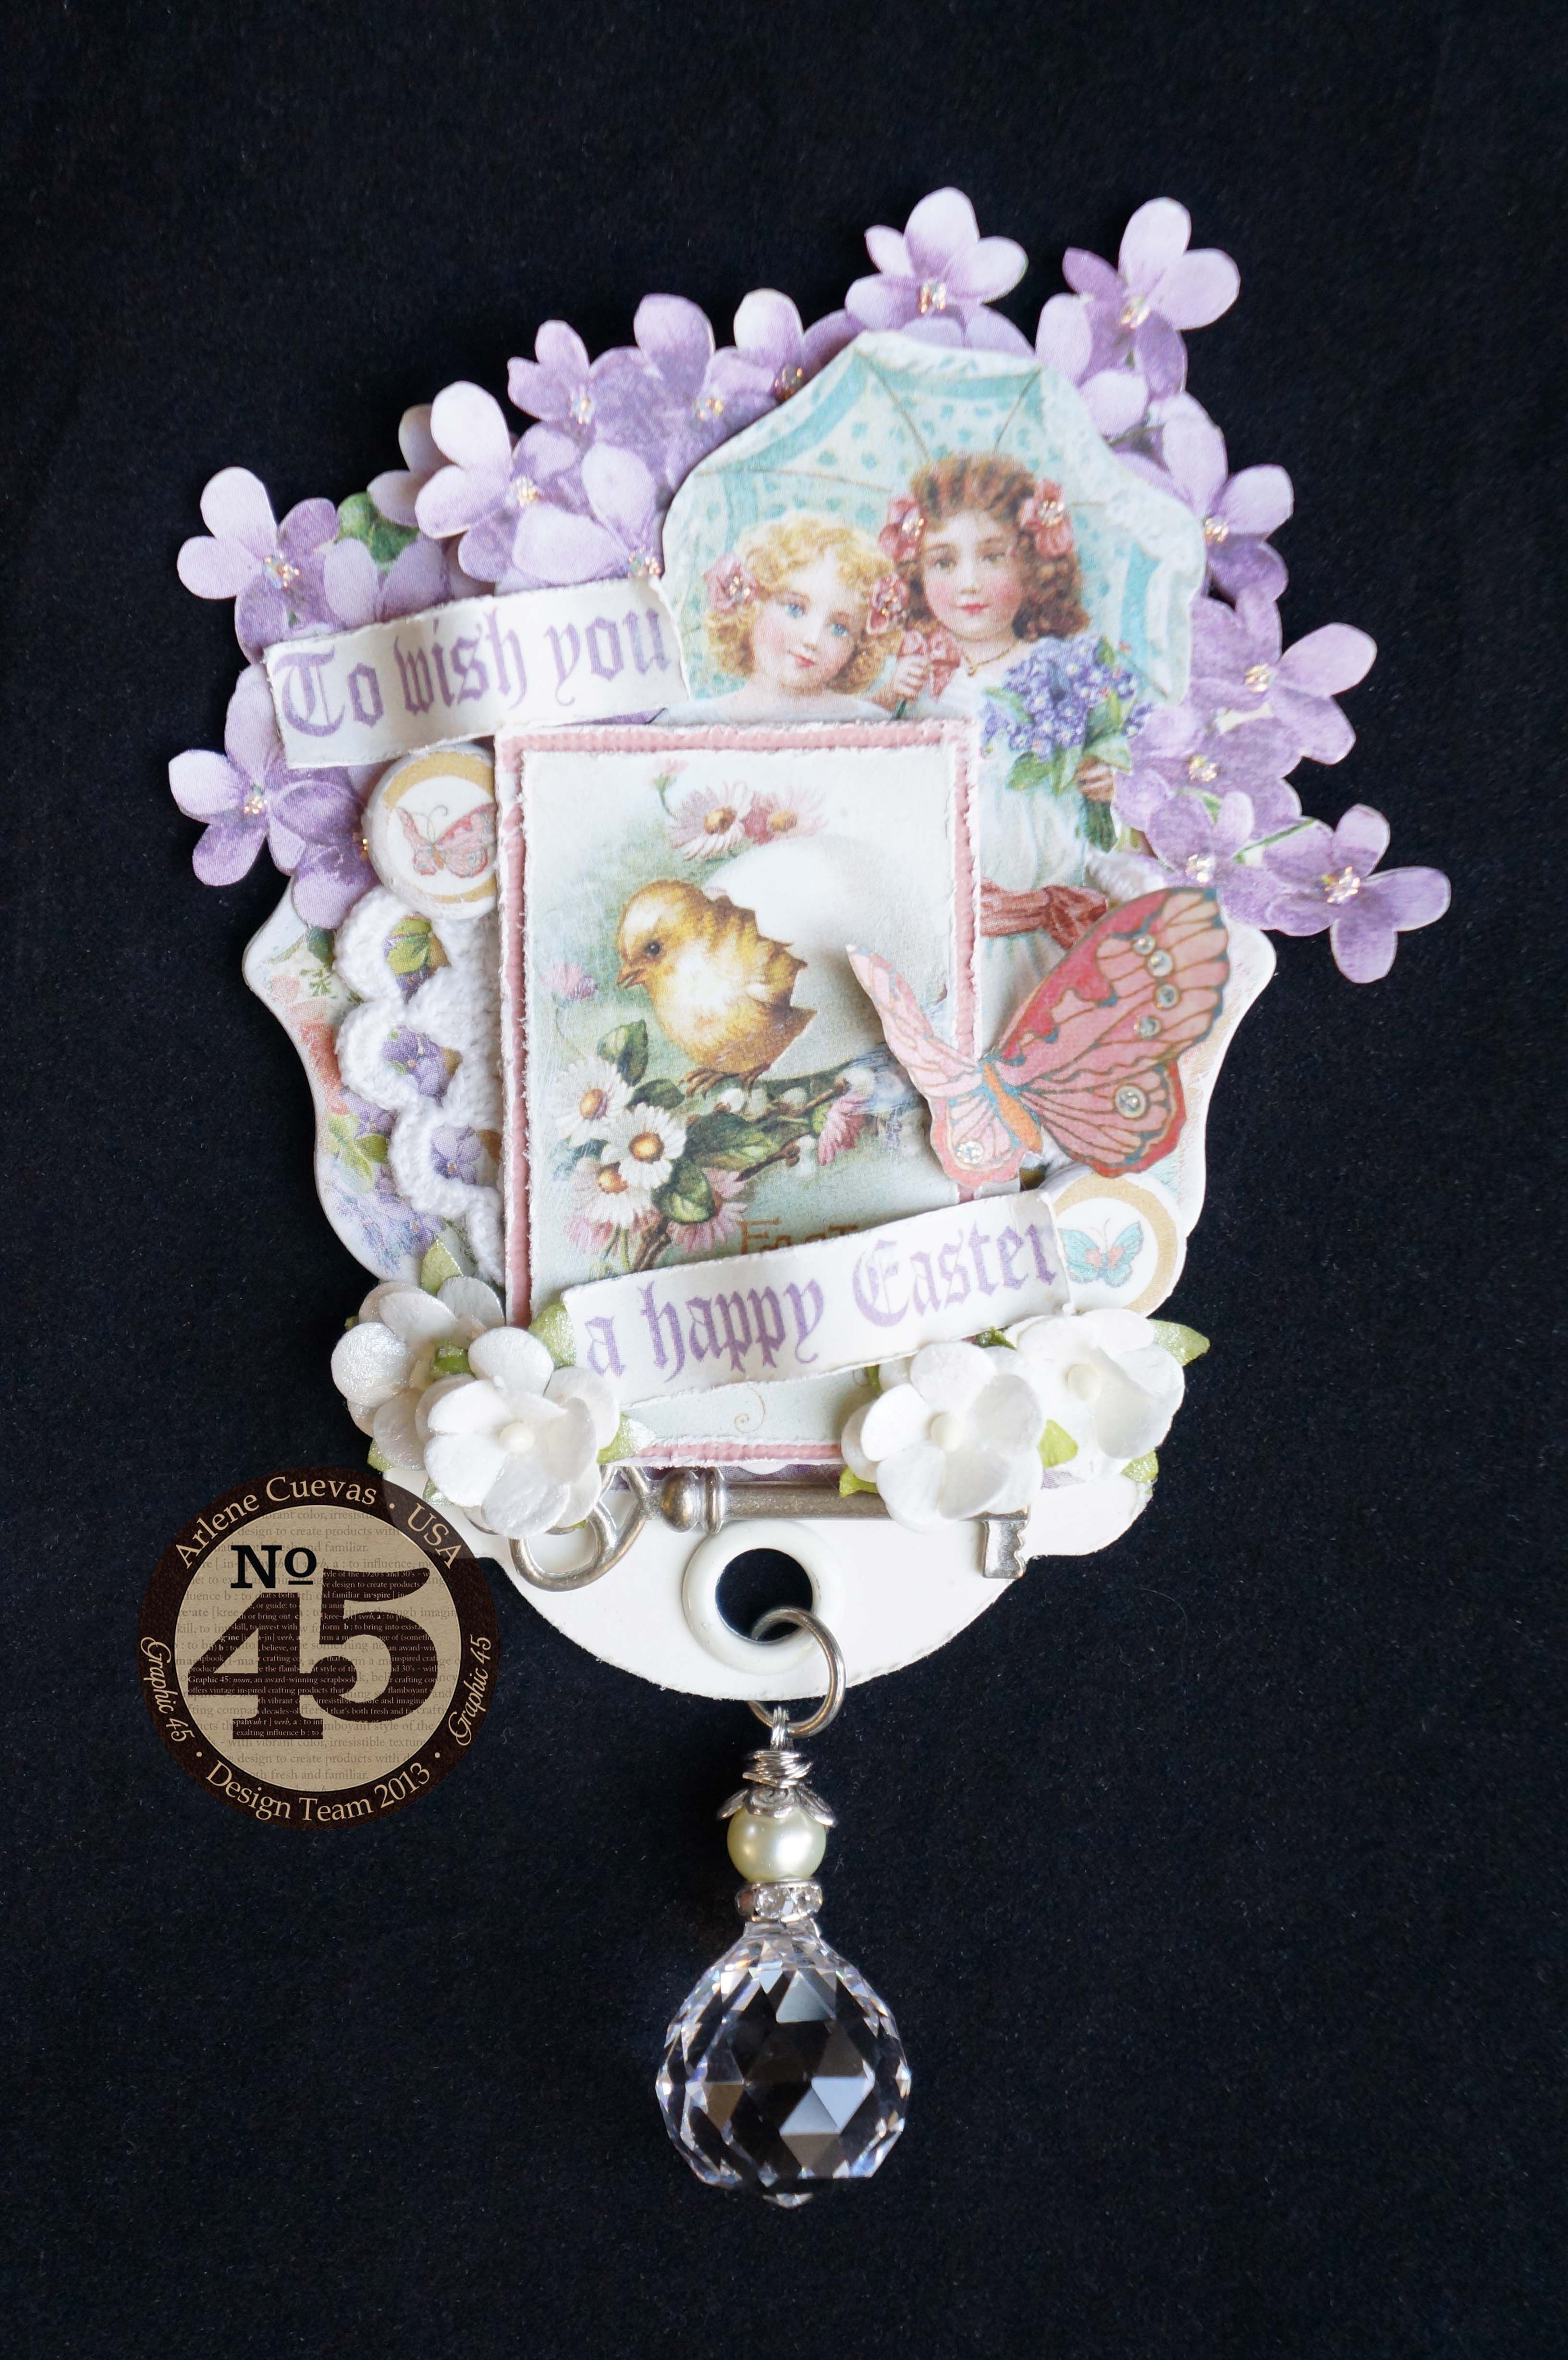 Easter ATC Tag featuring Sweet Sentiments by Graphic 45.